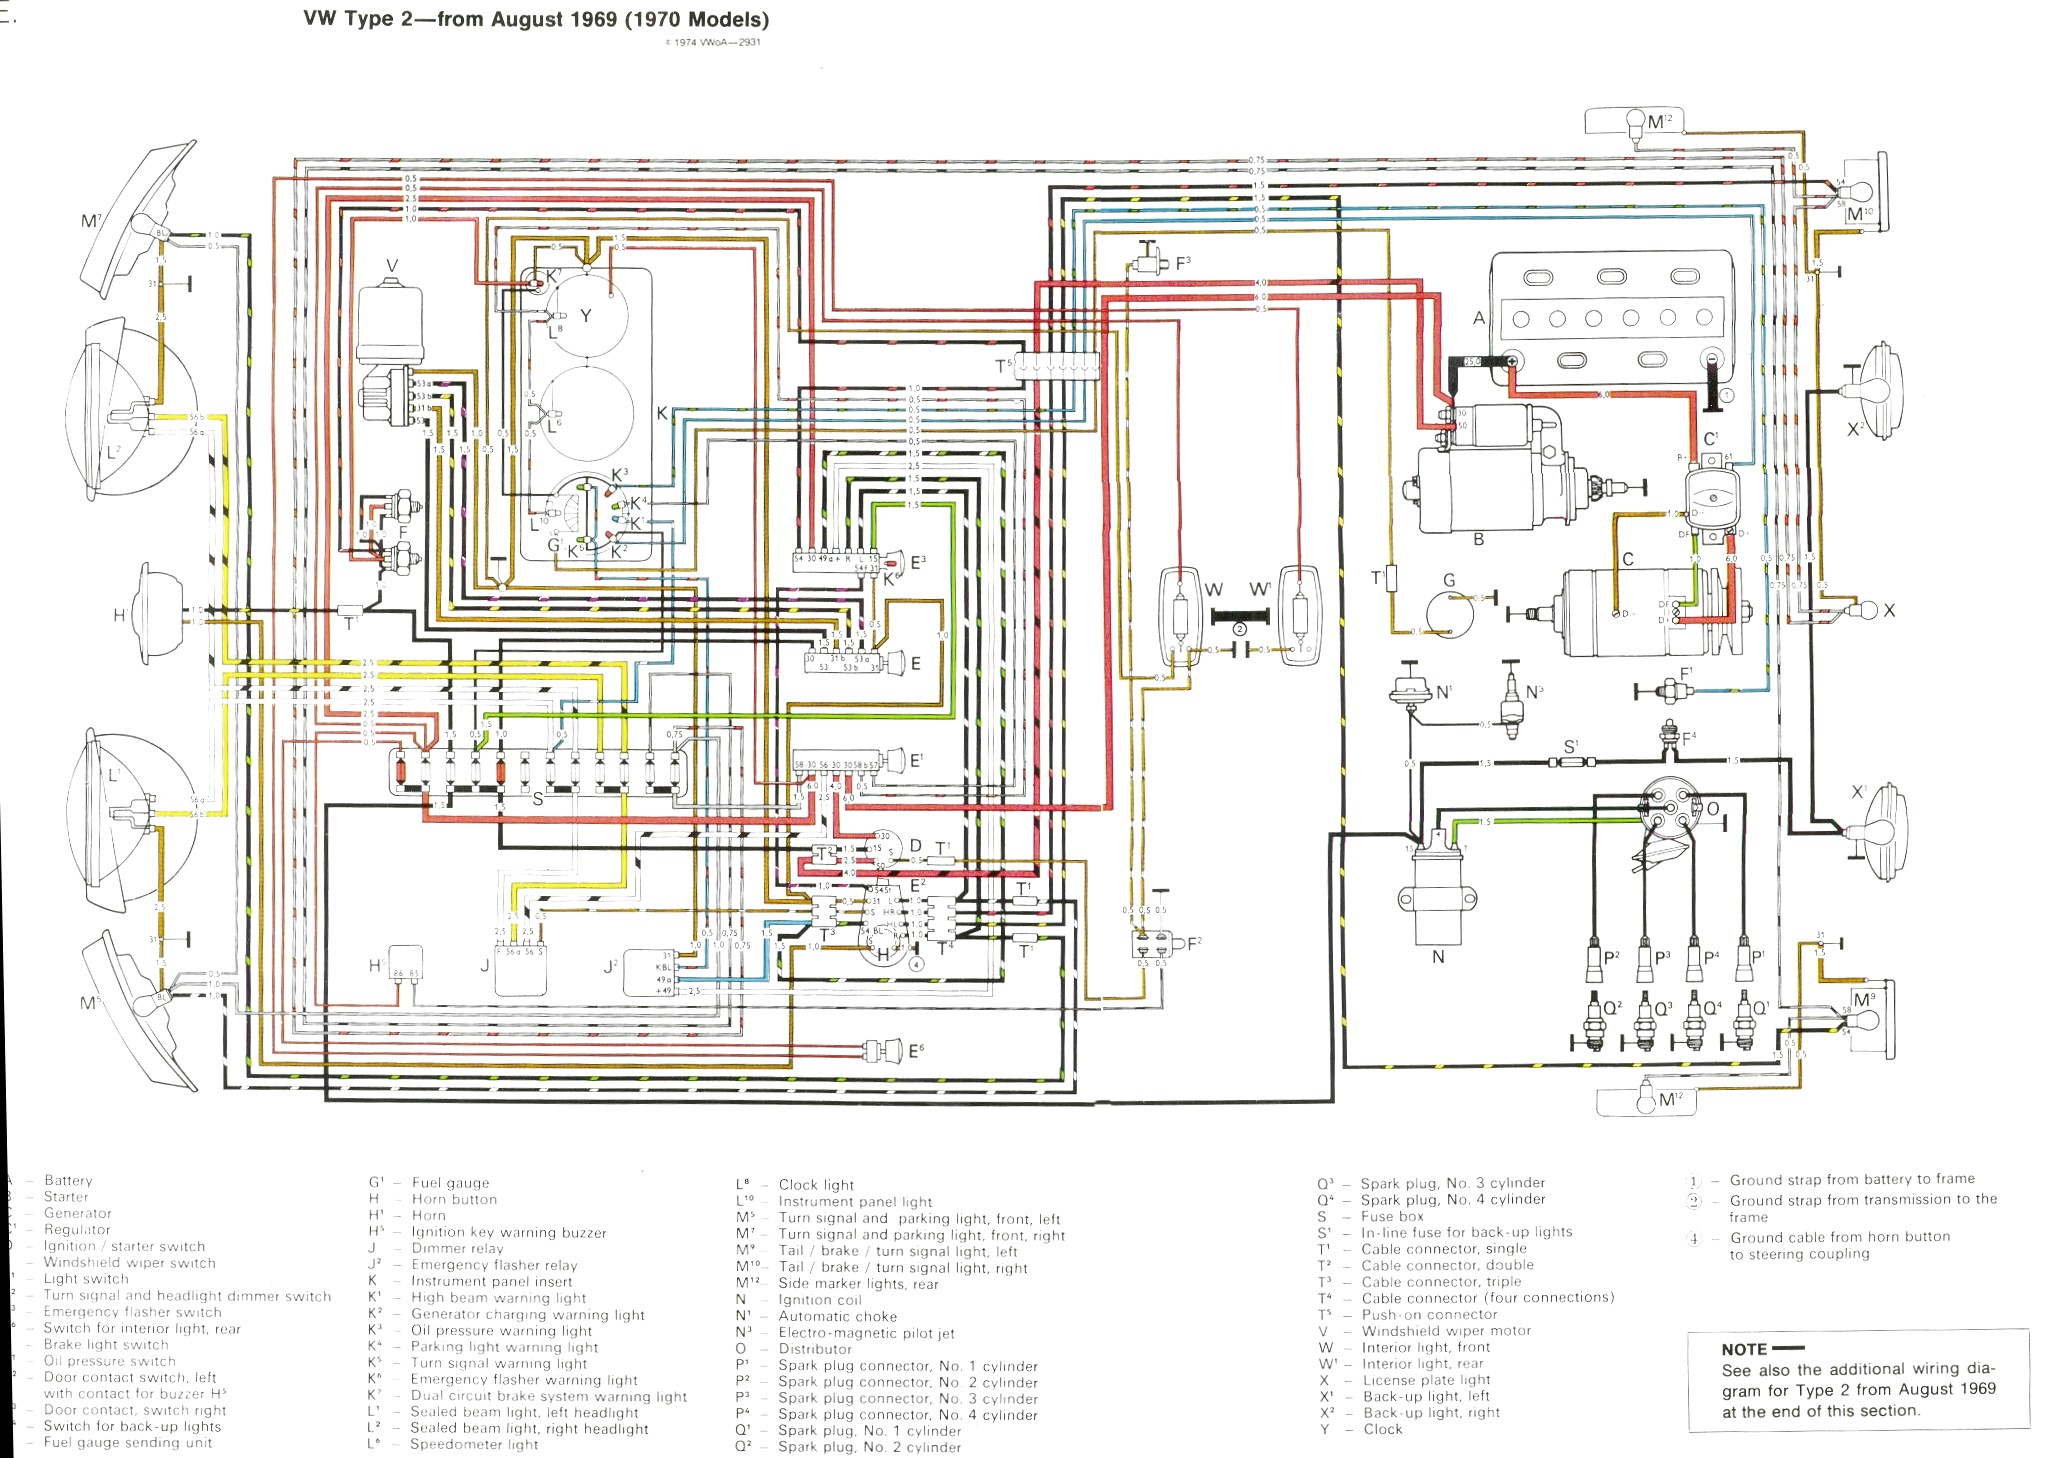 Wiring Diagram 1973 Mustang Alt Simple Guide About Process Flow Panama Canal Vw Beetle Voltage Regulator